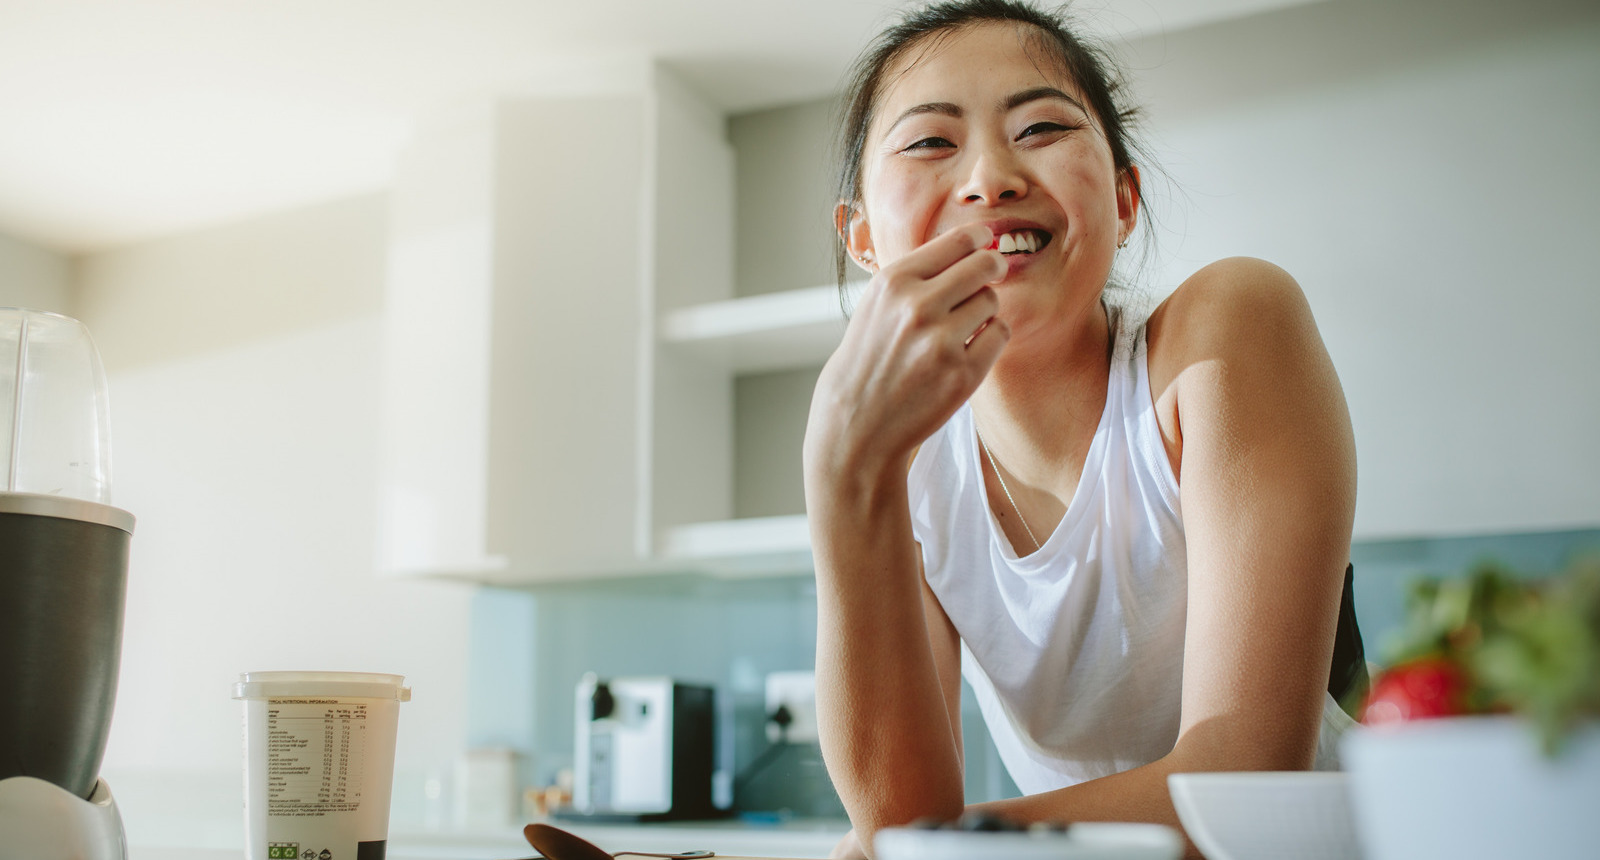 What To Eat For Healthier Skin